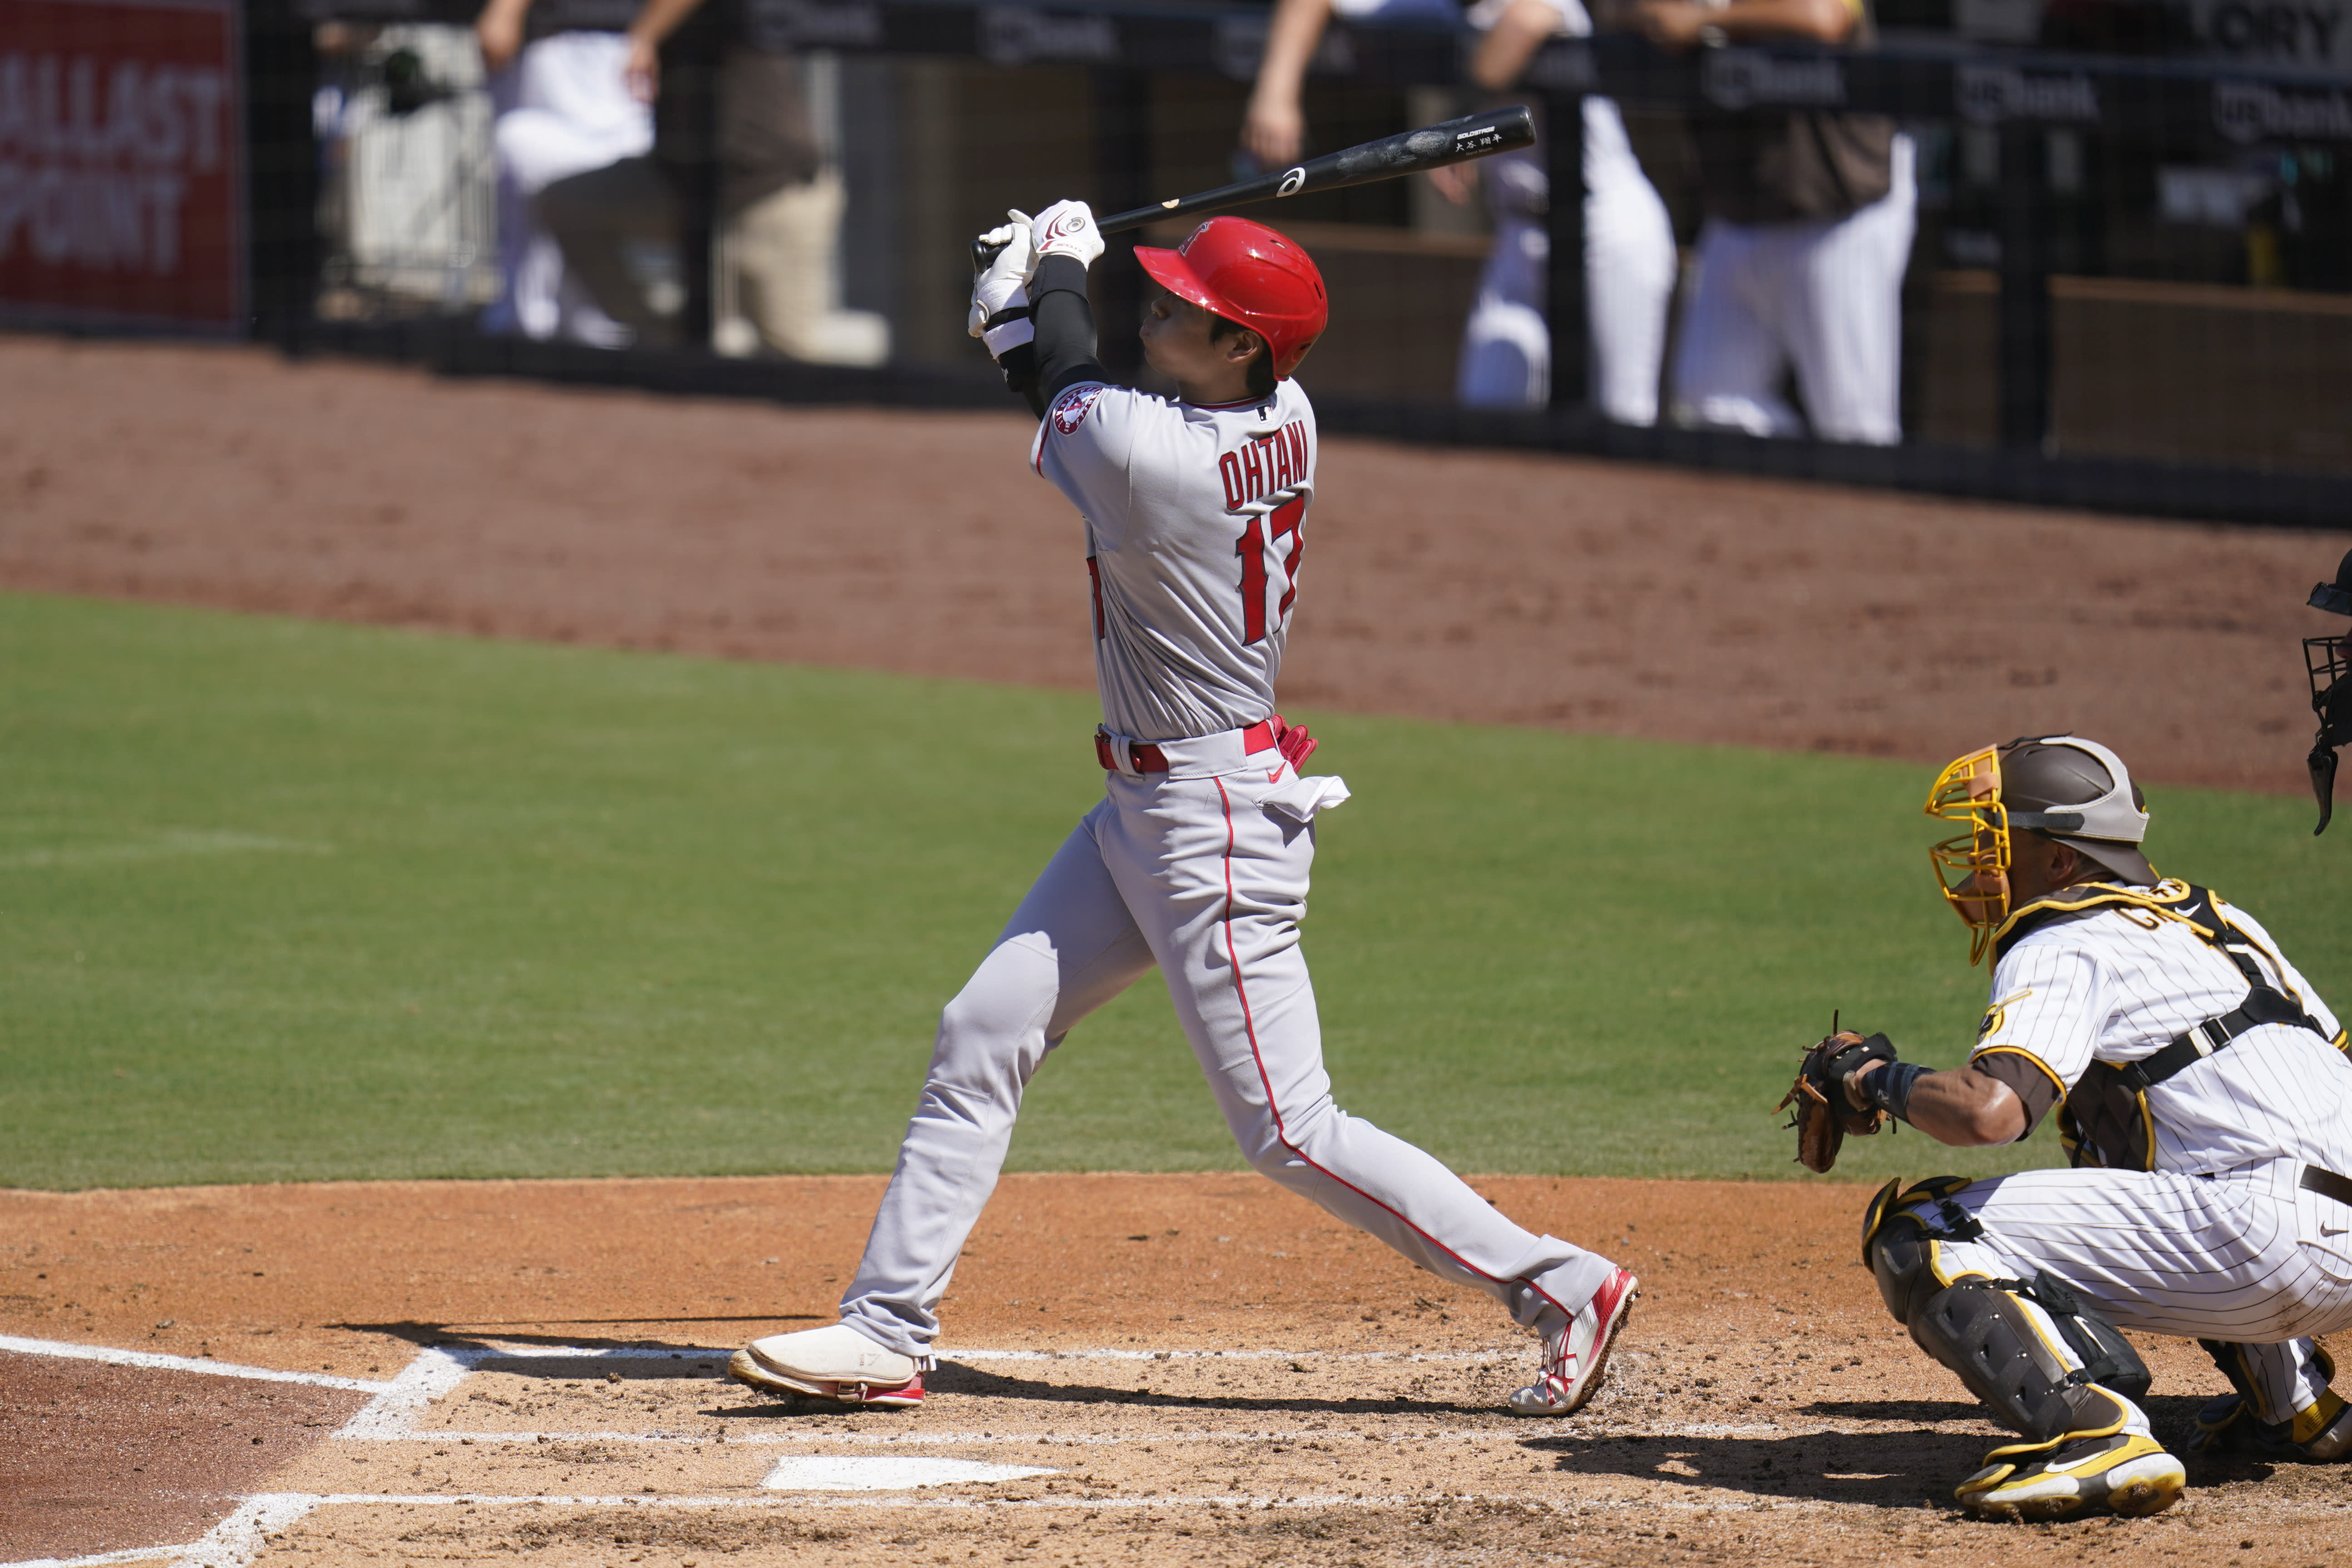 Los Angeles Angels' Shohei Ohtani watches his flyout during the third inning of a baseball game against the San Diego Padres, Wednesday, Sept. 23, 2020, in San Diego. (AP Photo/Gregory Bull)